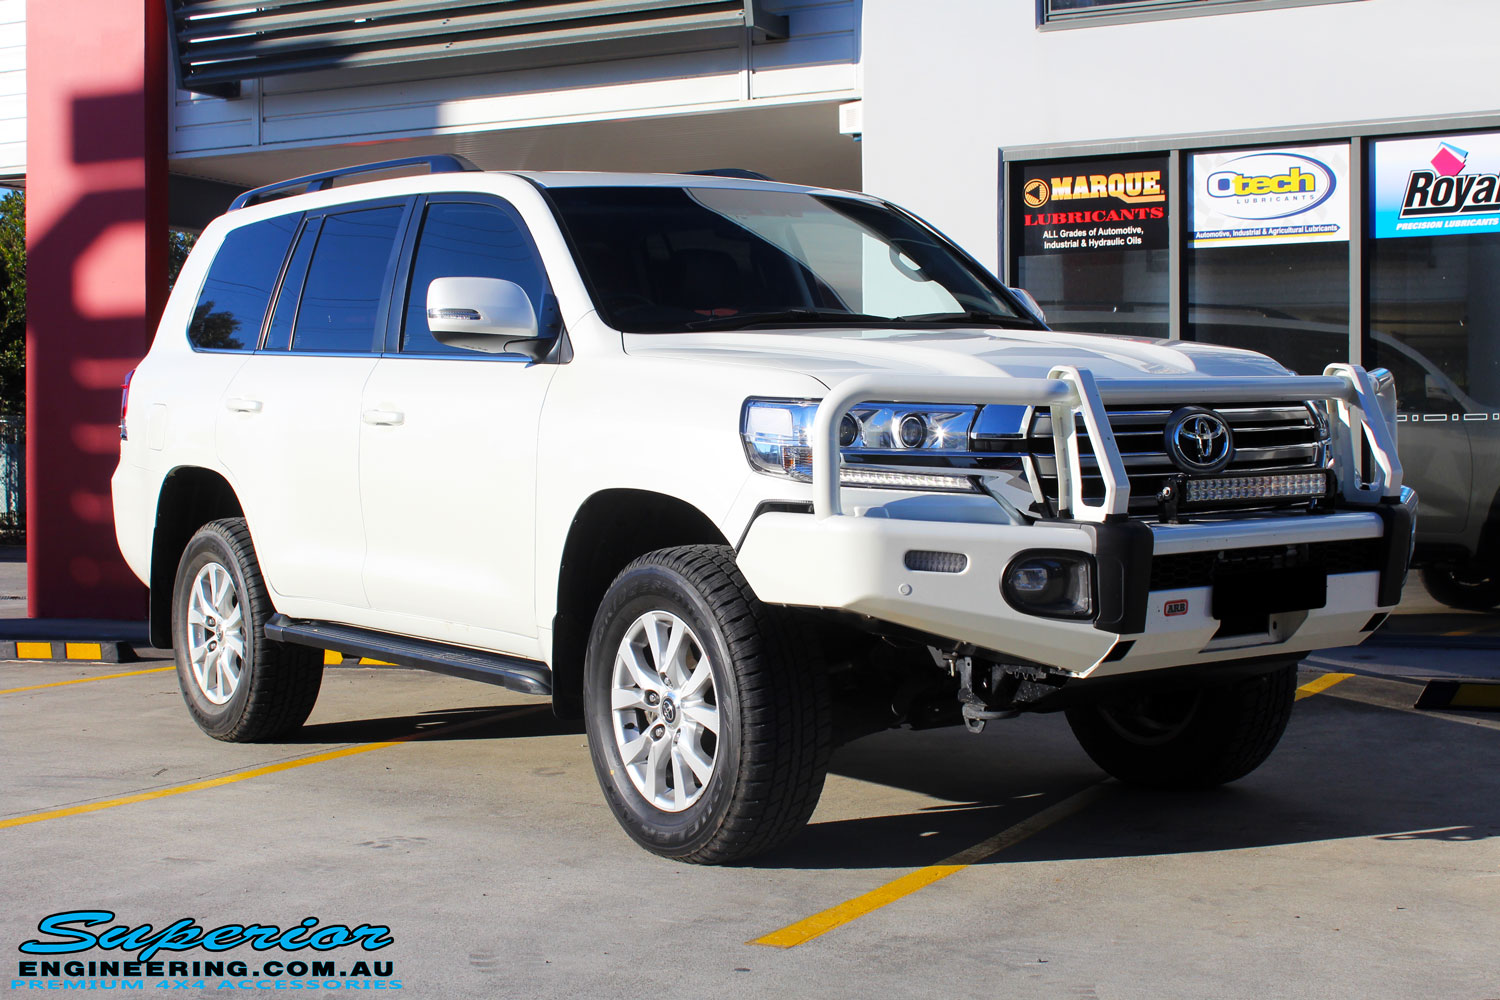 Right front side view of a Toyota 200 Series Cruiser Wagon in White being fitted with Superior Chromoly Upper Control Arms